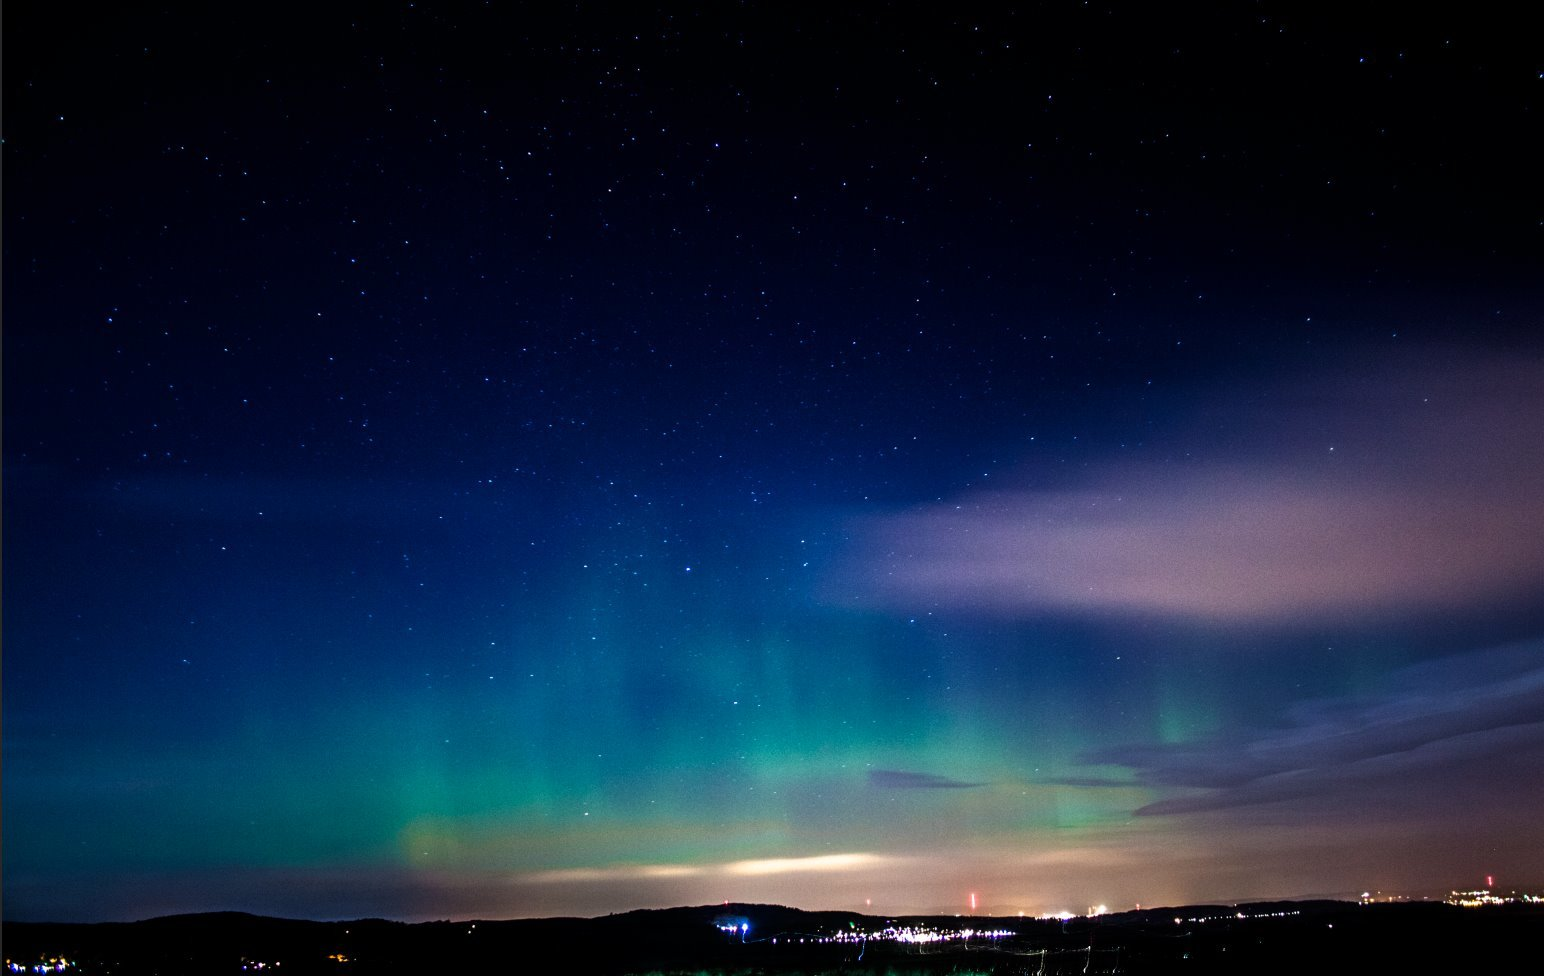 Russell Hope's picture of the Northern Lights from December 2015